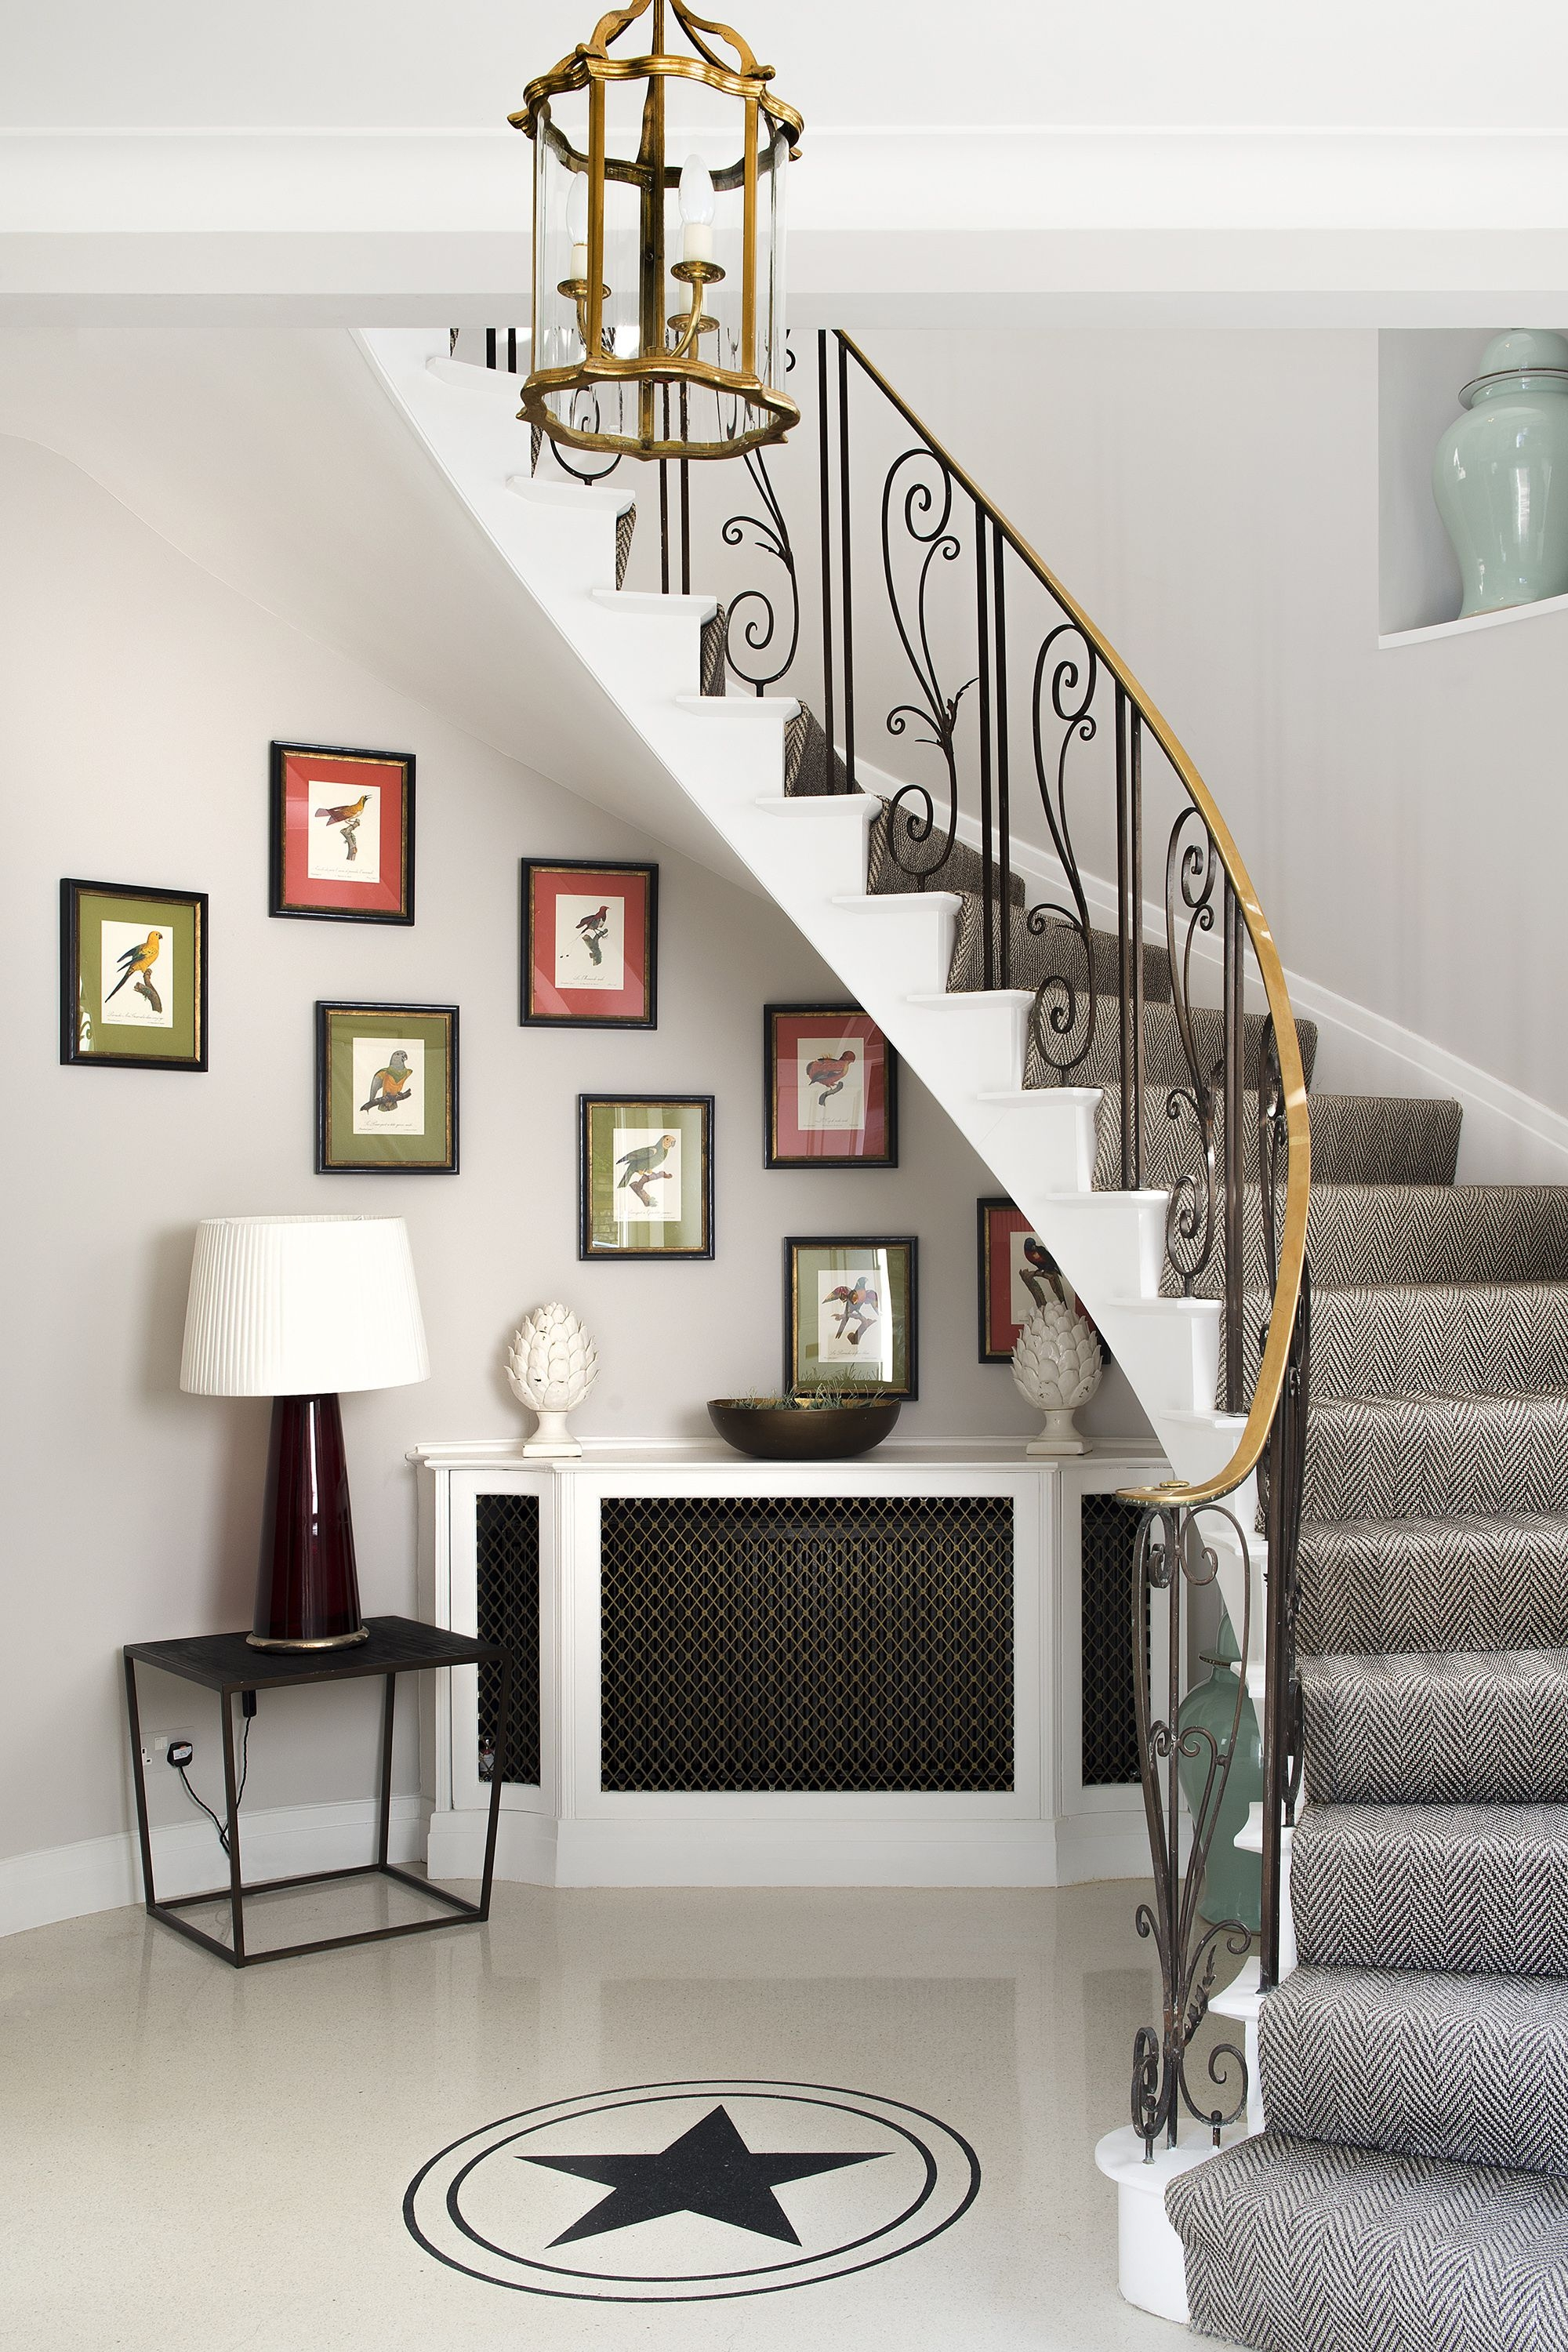 27 Stylish Staircase Decorating Ideas How To Decorate Stairways | Interior Steps Design For Hall | Modern Drawing Room Tv Cabinet | Decorative | Architecture | Half Circle Staircase | Model House Hall